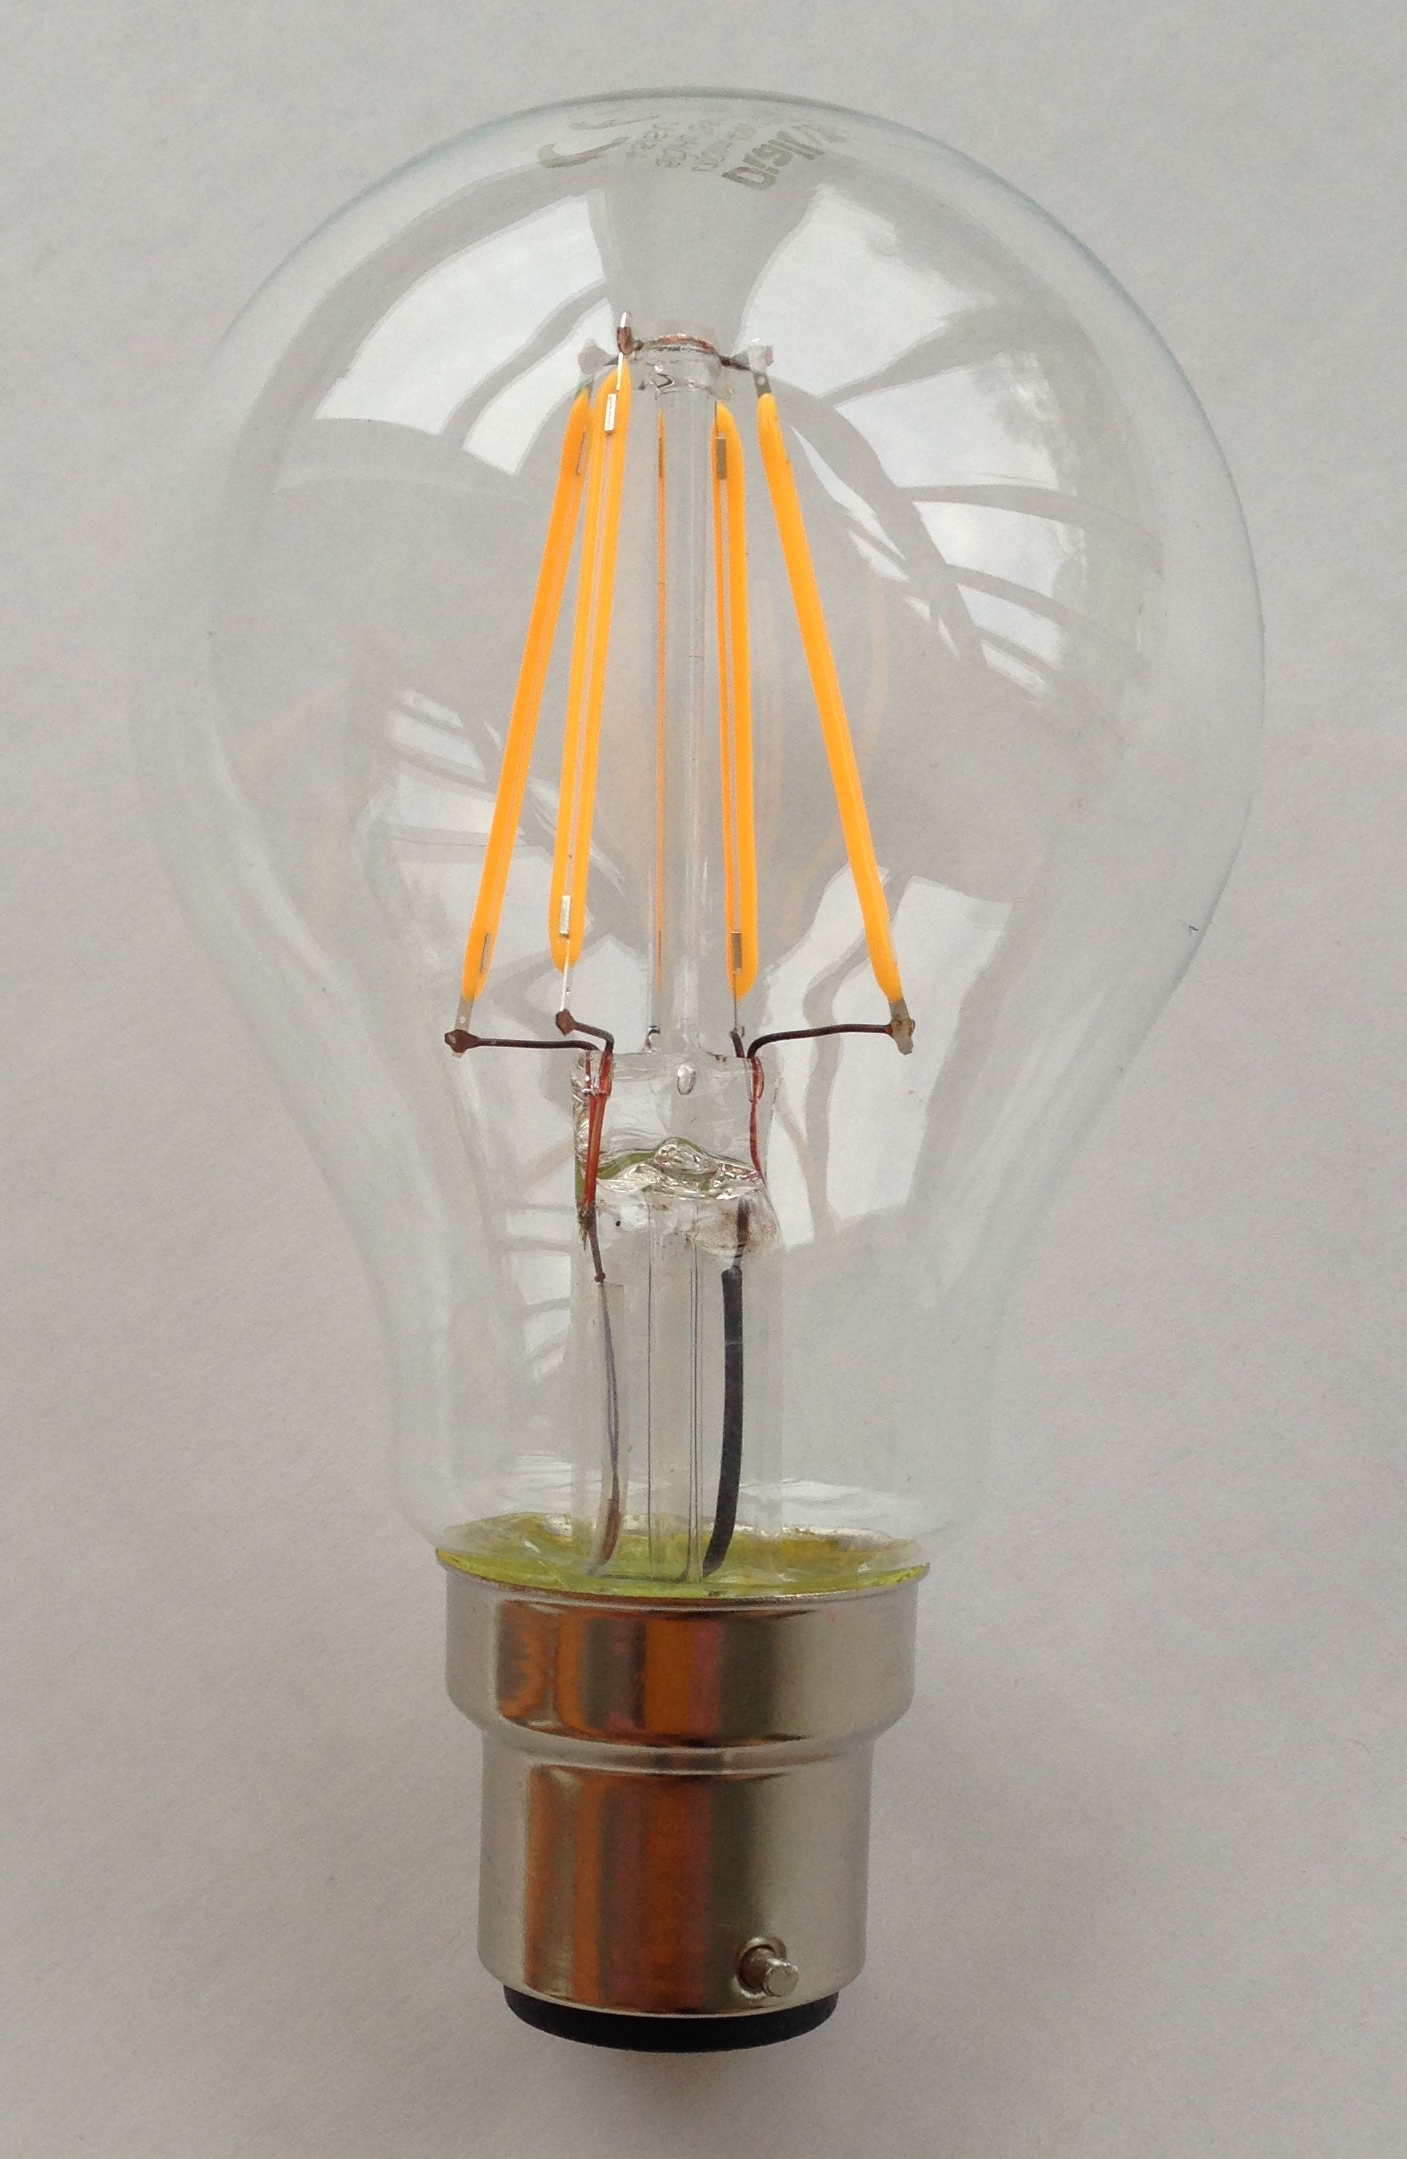 Led Filament Wikipedia Wiring Multiple Fluorescent Light Fixtures Free Download